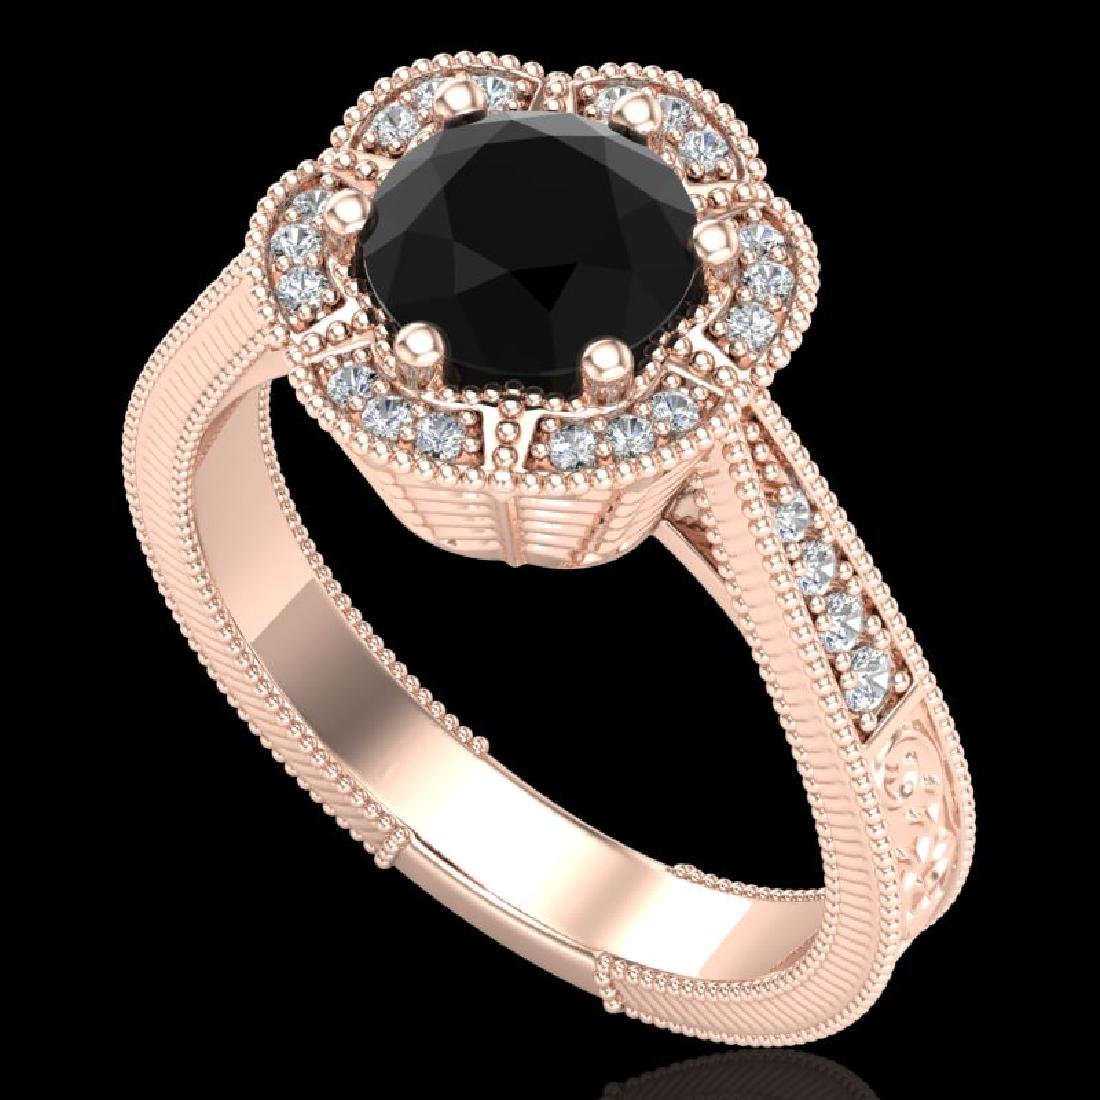 1.33 CTW Fancy Black Diamond Solitaire Engagement Art